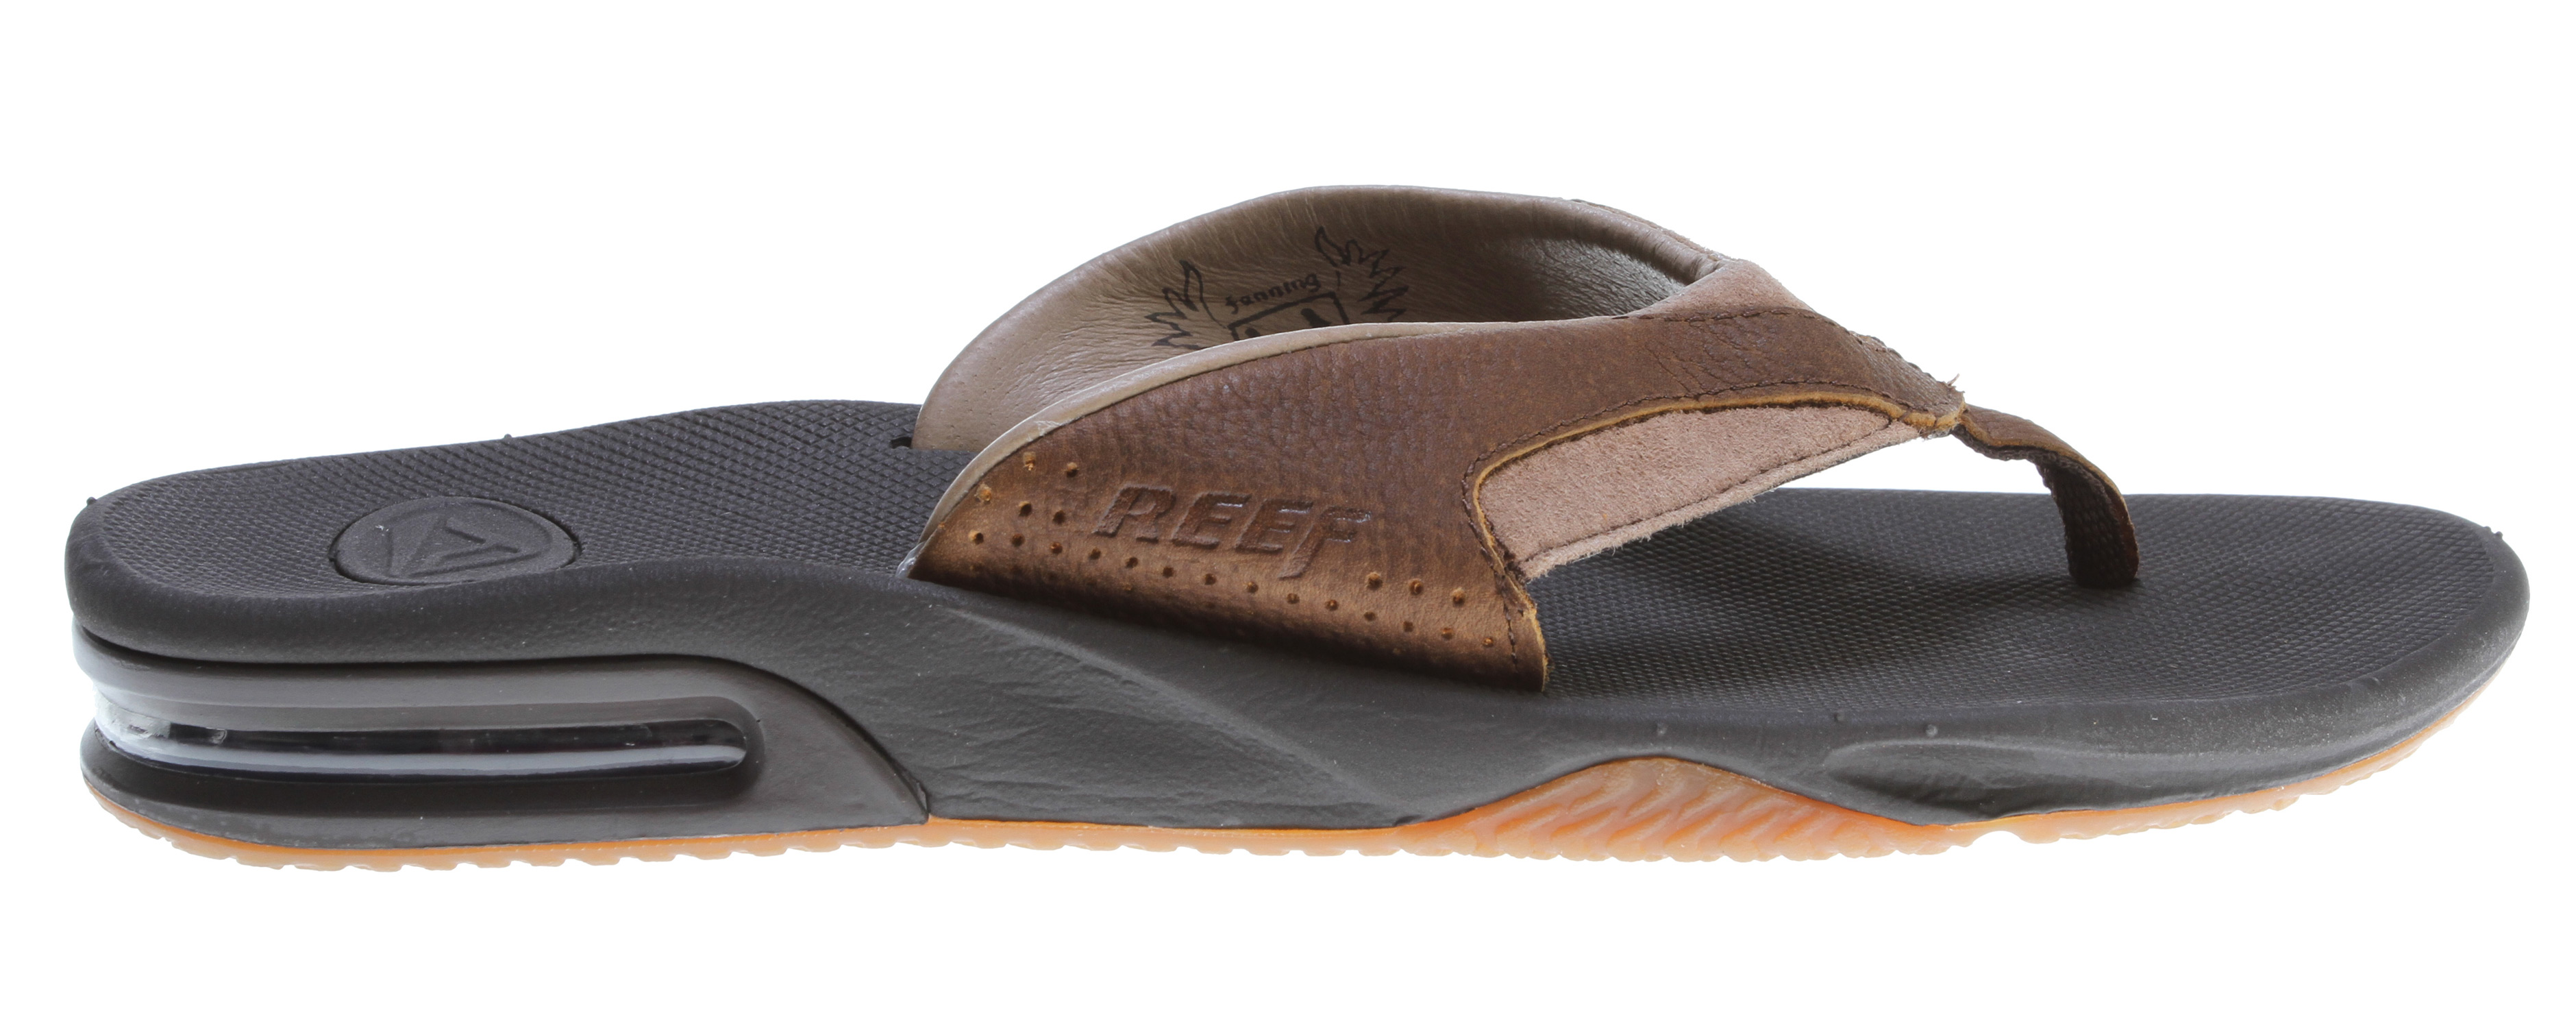 "Surf Key Features of the Reef Leather Fanning Sandals: High quality full grain leather upper Comfortable glove leather lining contoured compression molded eva footbed with anatomical arch support Full 360° heel airbag enclosed in soft polyurethane Church key to open your ""soda"" bottle Reef icon herringbone rubber outsole - $58.00"